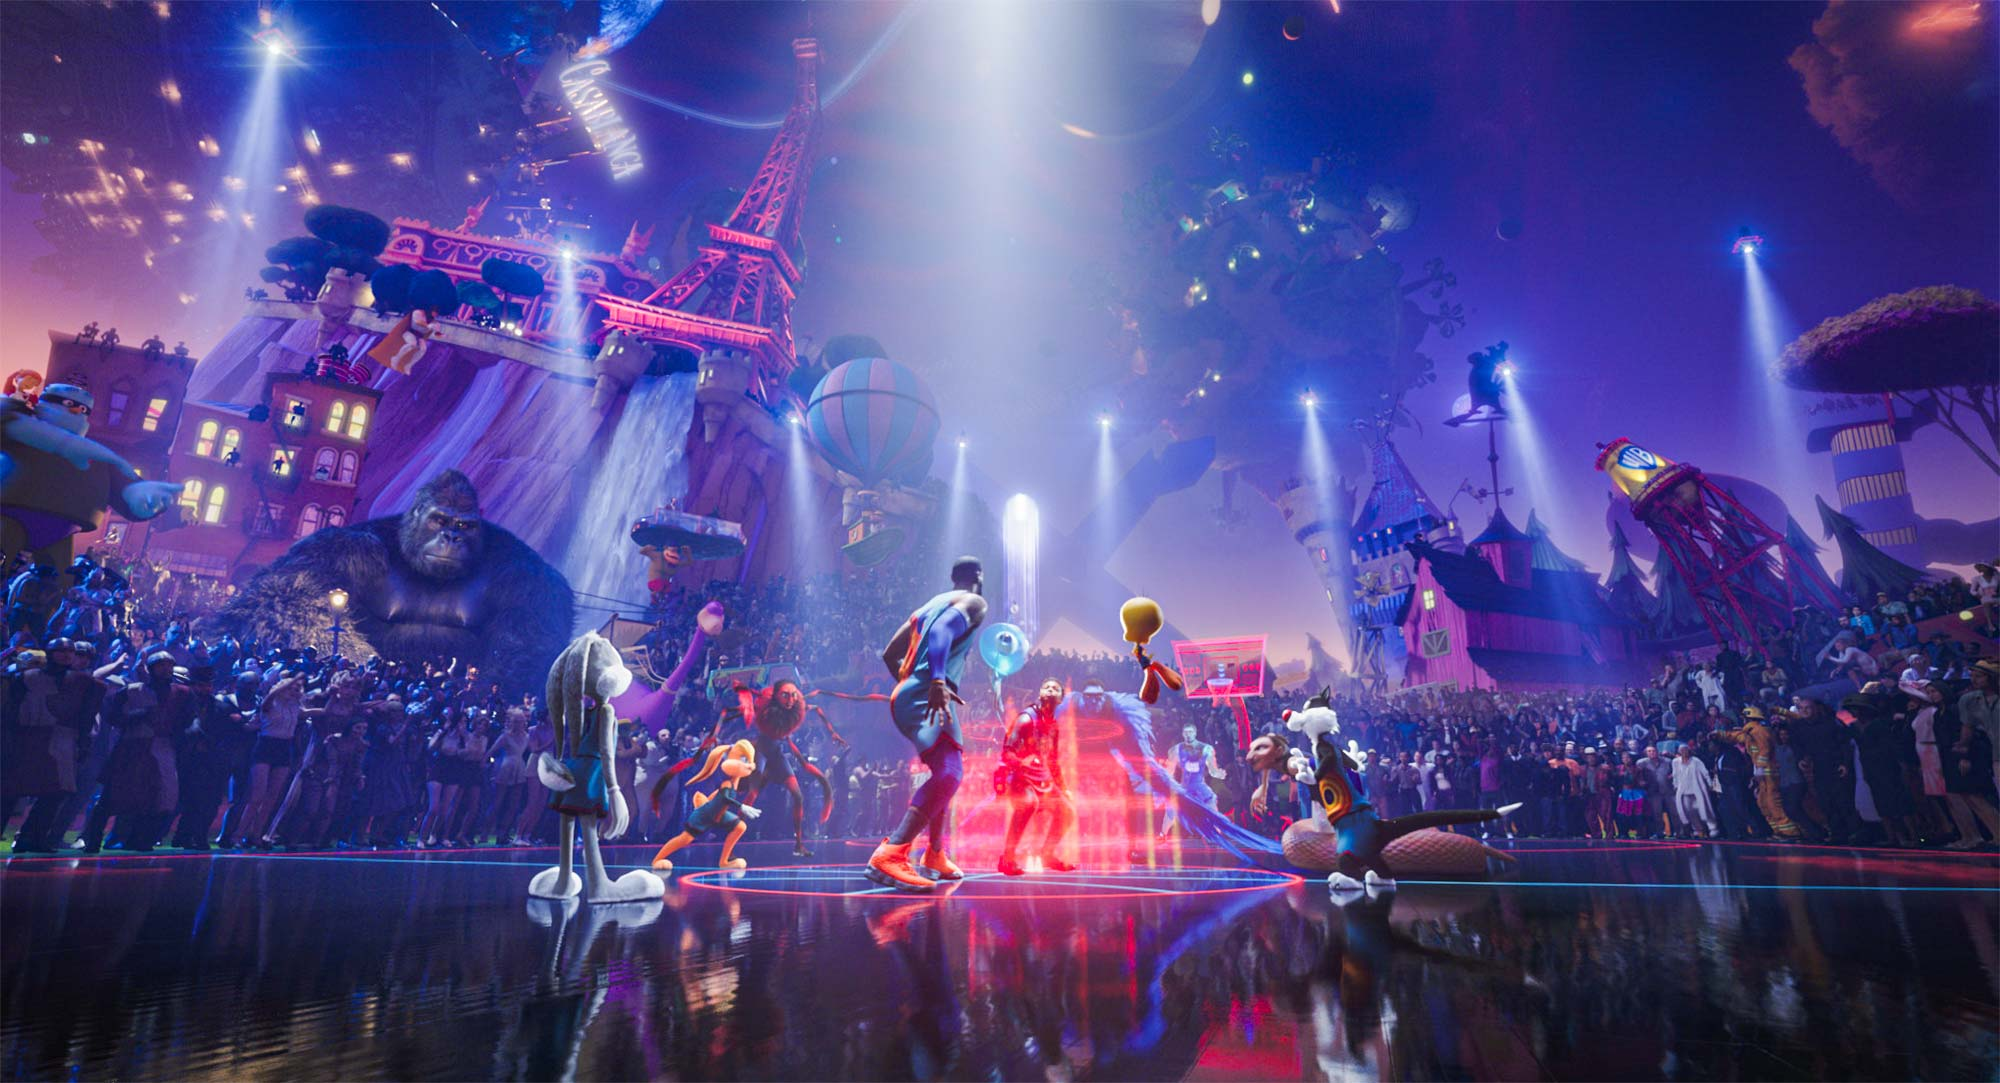 »Space Jam – a new legacy«.